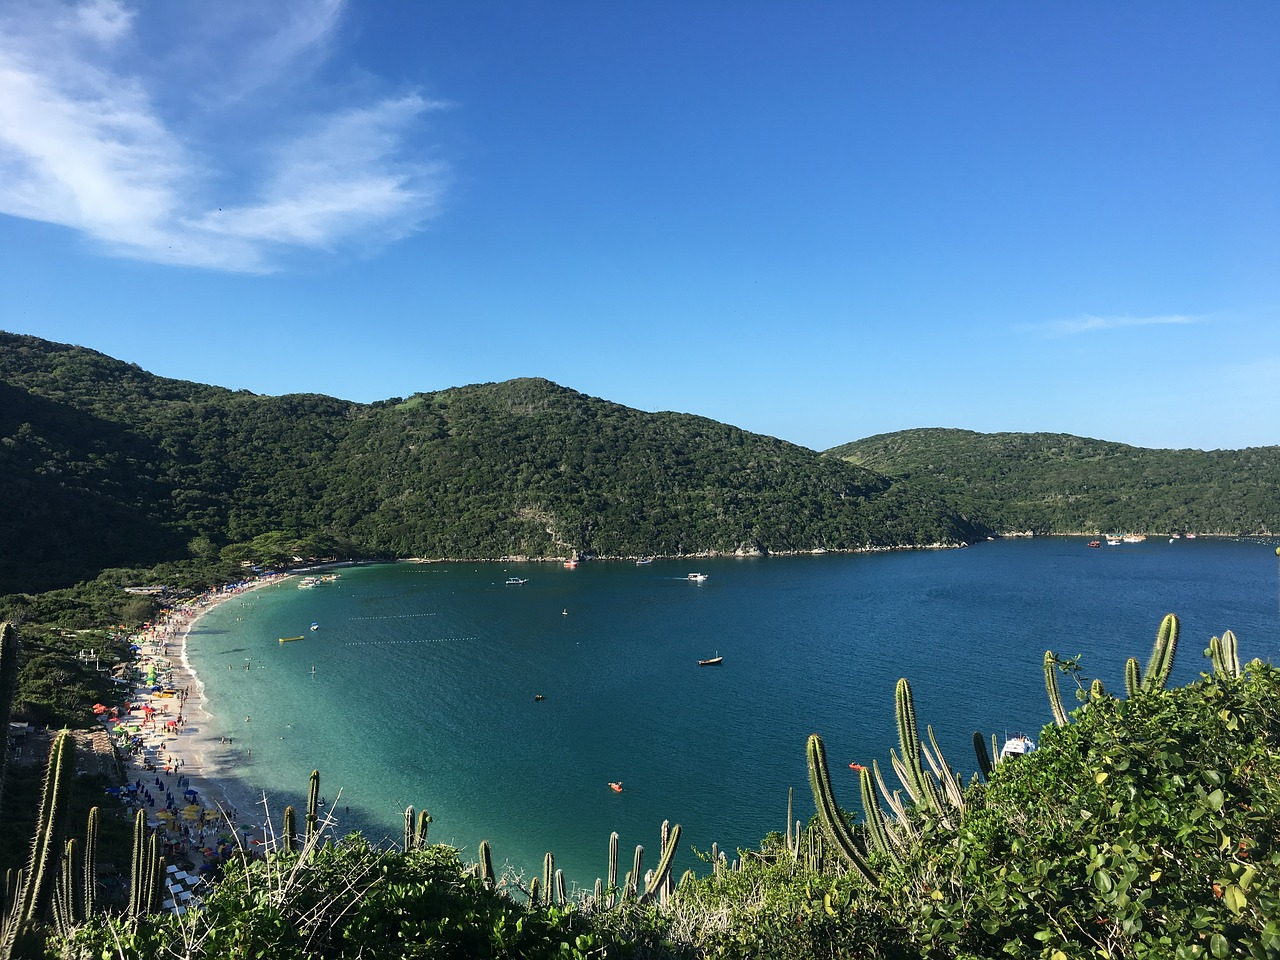 arraial-do-cabo-2358886_1280.jpg